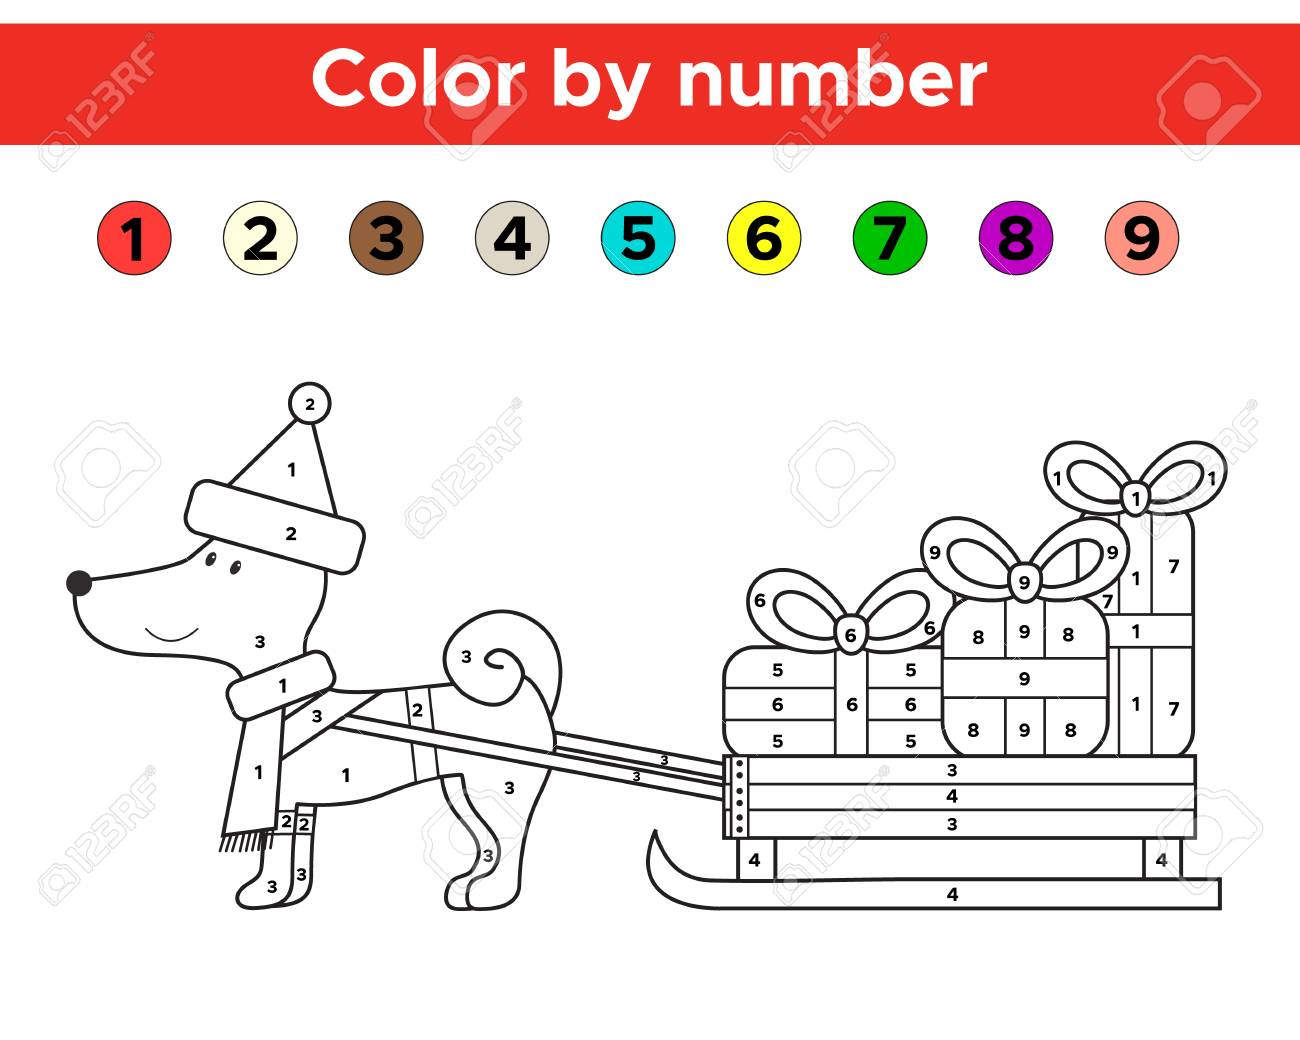 Color by number for preschool and school kids. Christmas coloring page with funny cartoon dog. Vector illustration. - 86920793